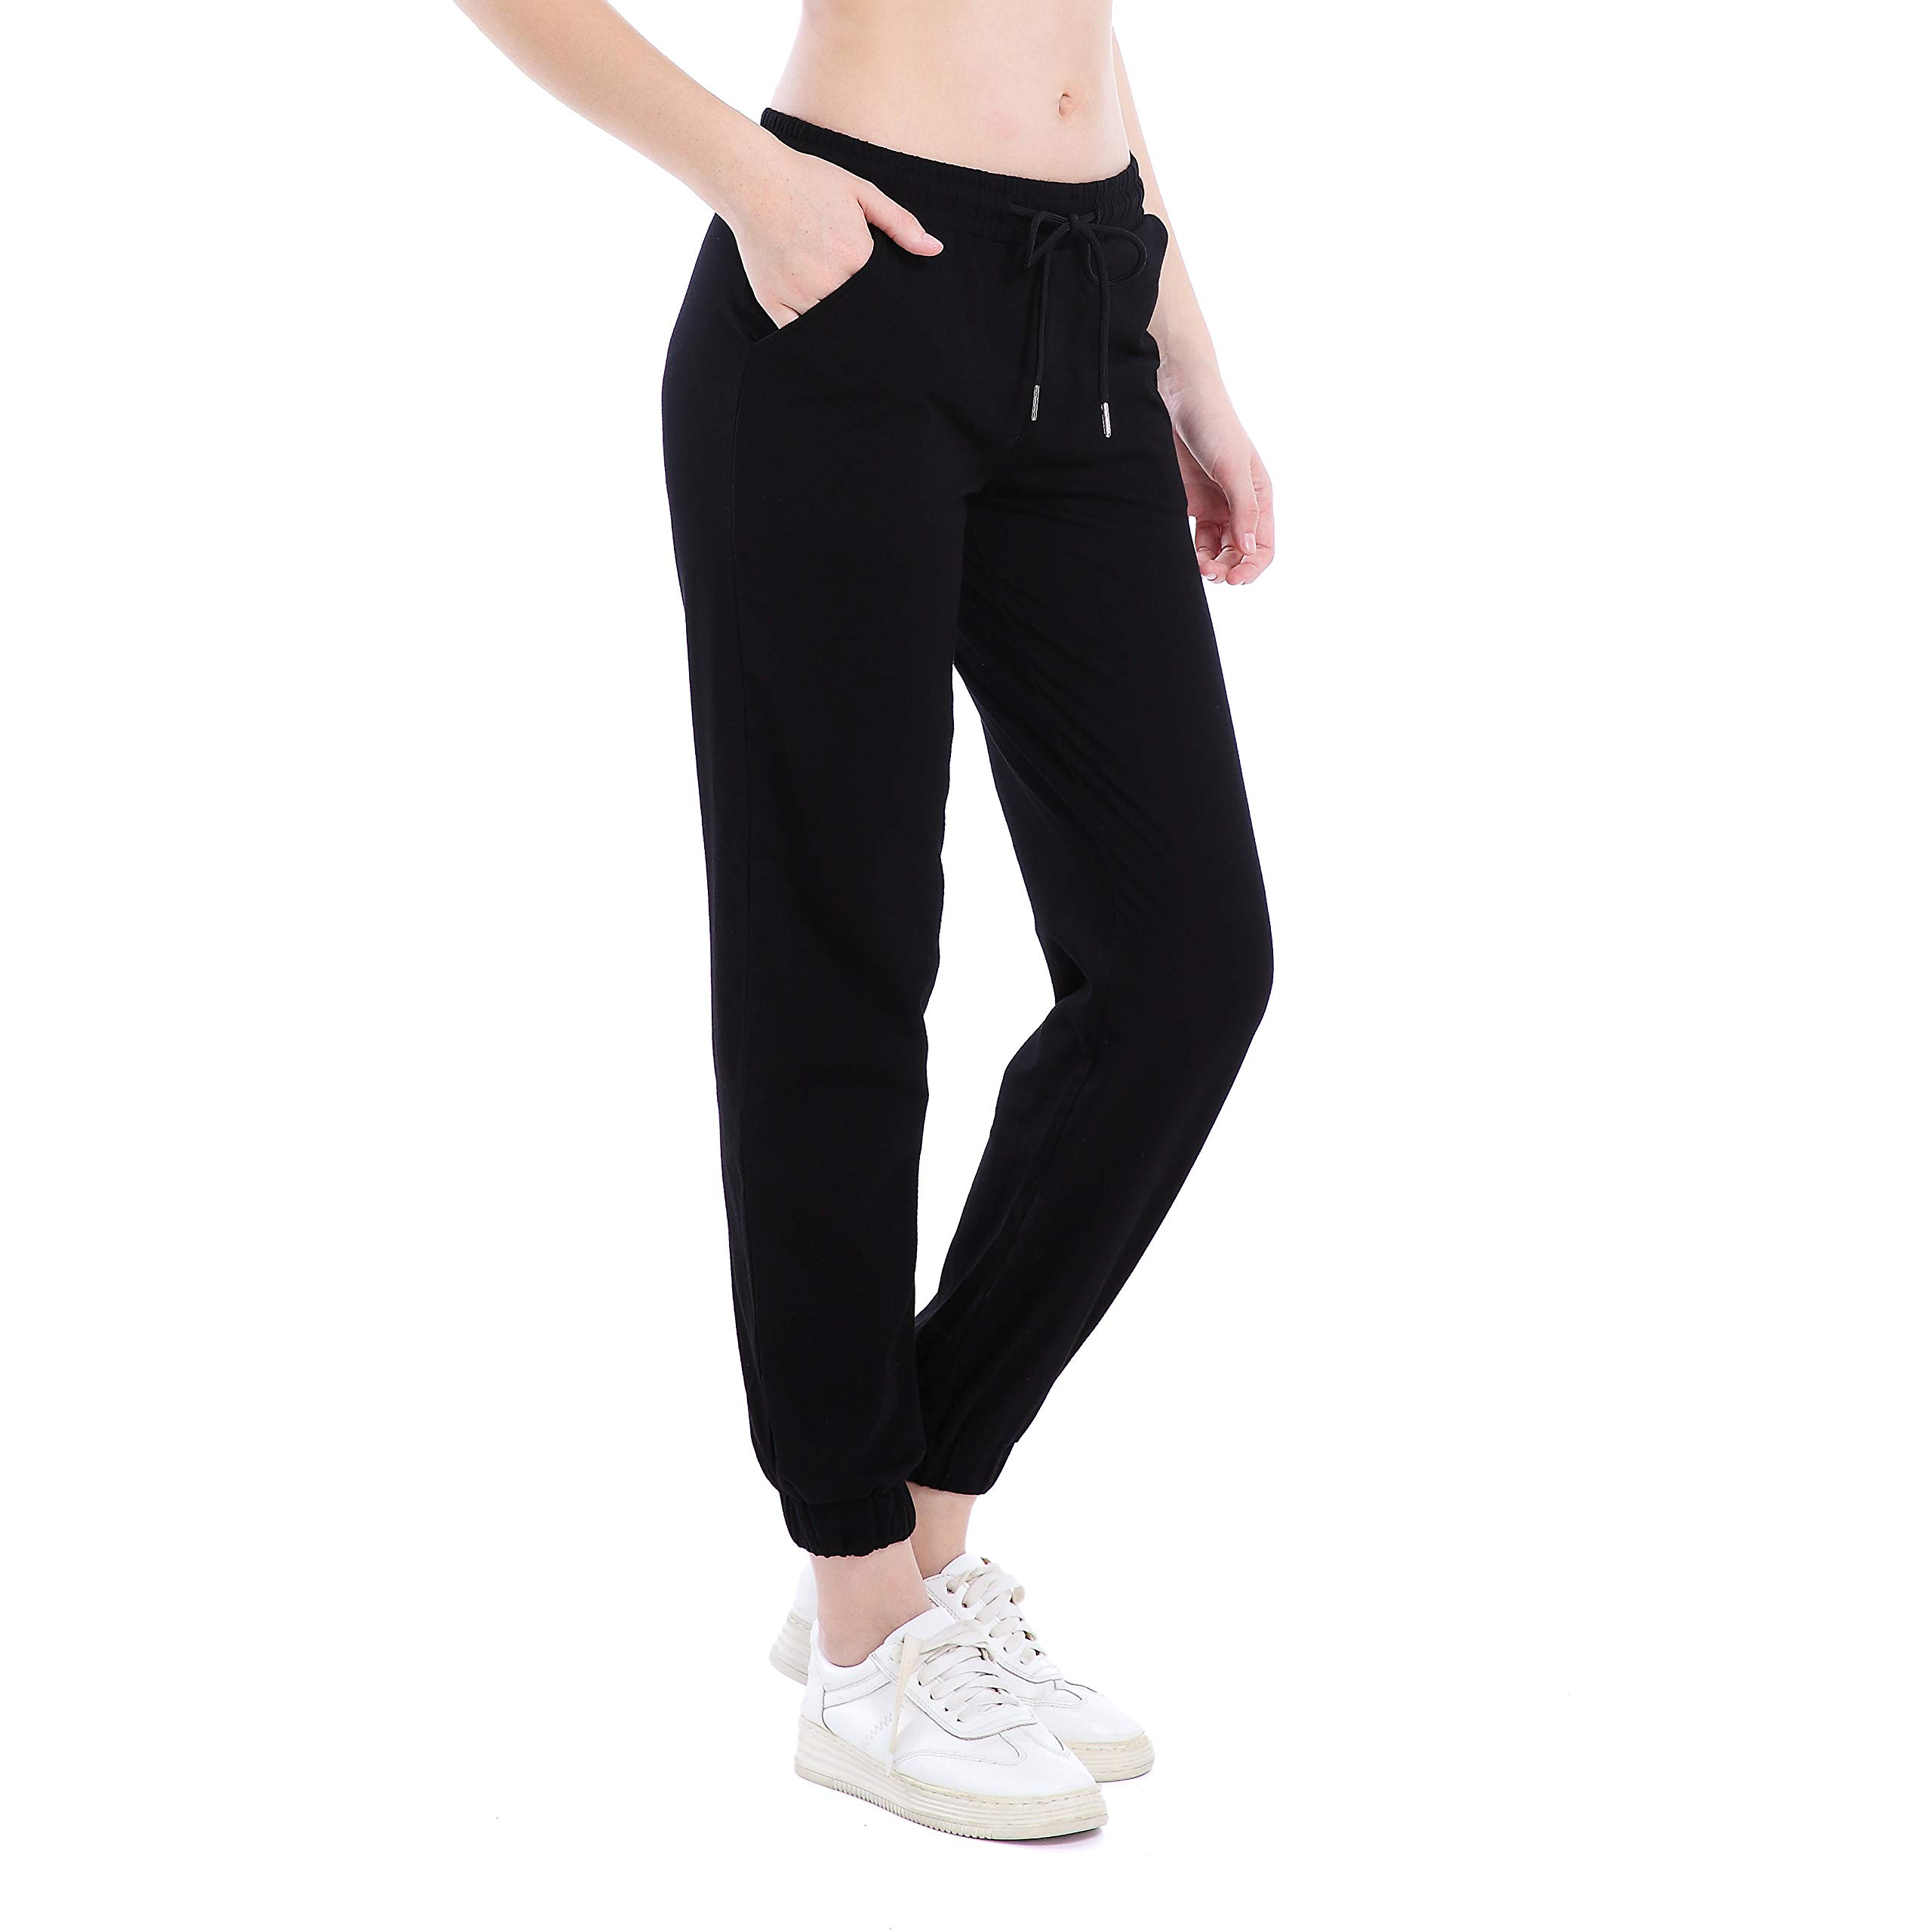 Ferrieswheel Story Summer Sweatpants for Women Casual Spandex Lounge Joggers Pants Pockets Workout Black